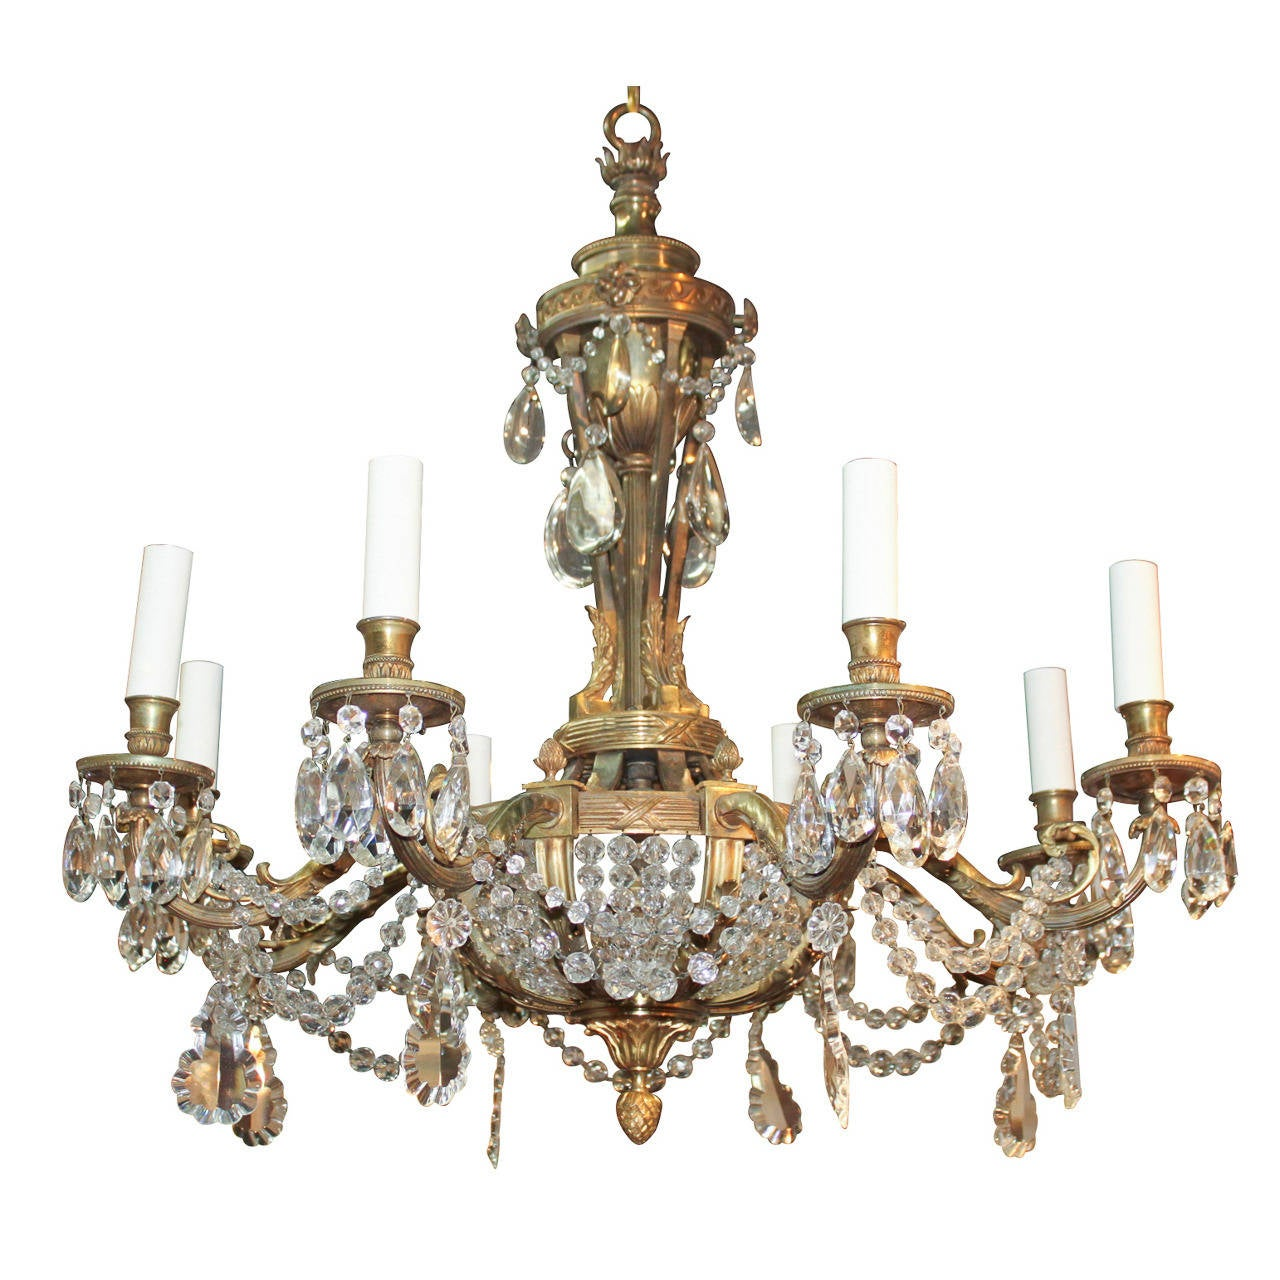 19th c French Bronze and Crystal Chandelier at 1stdibs